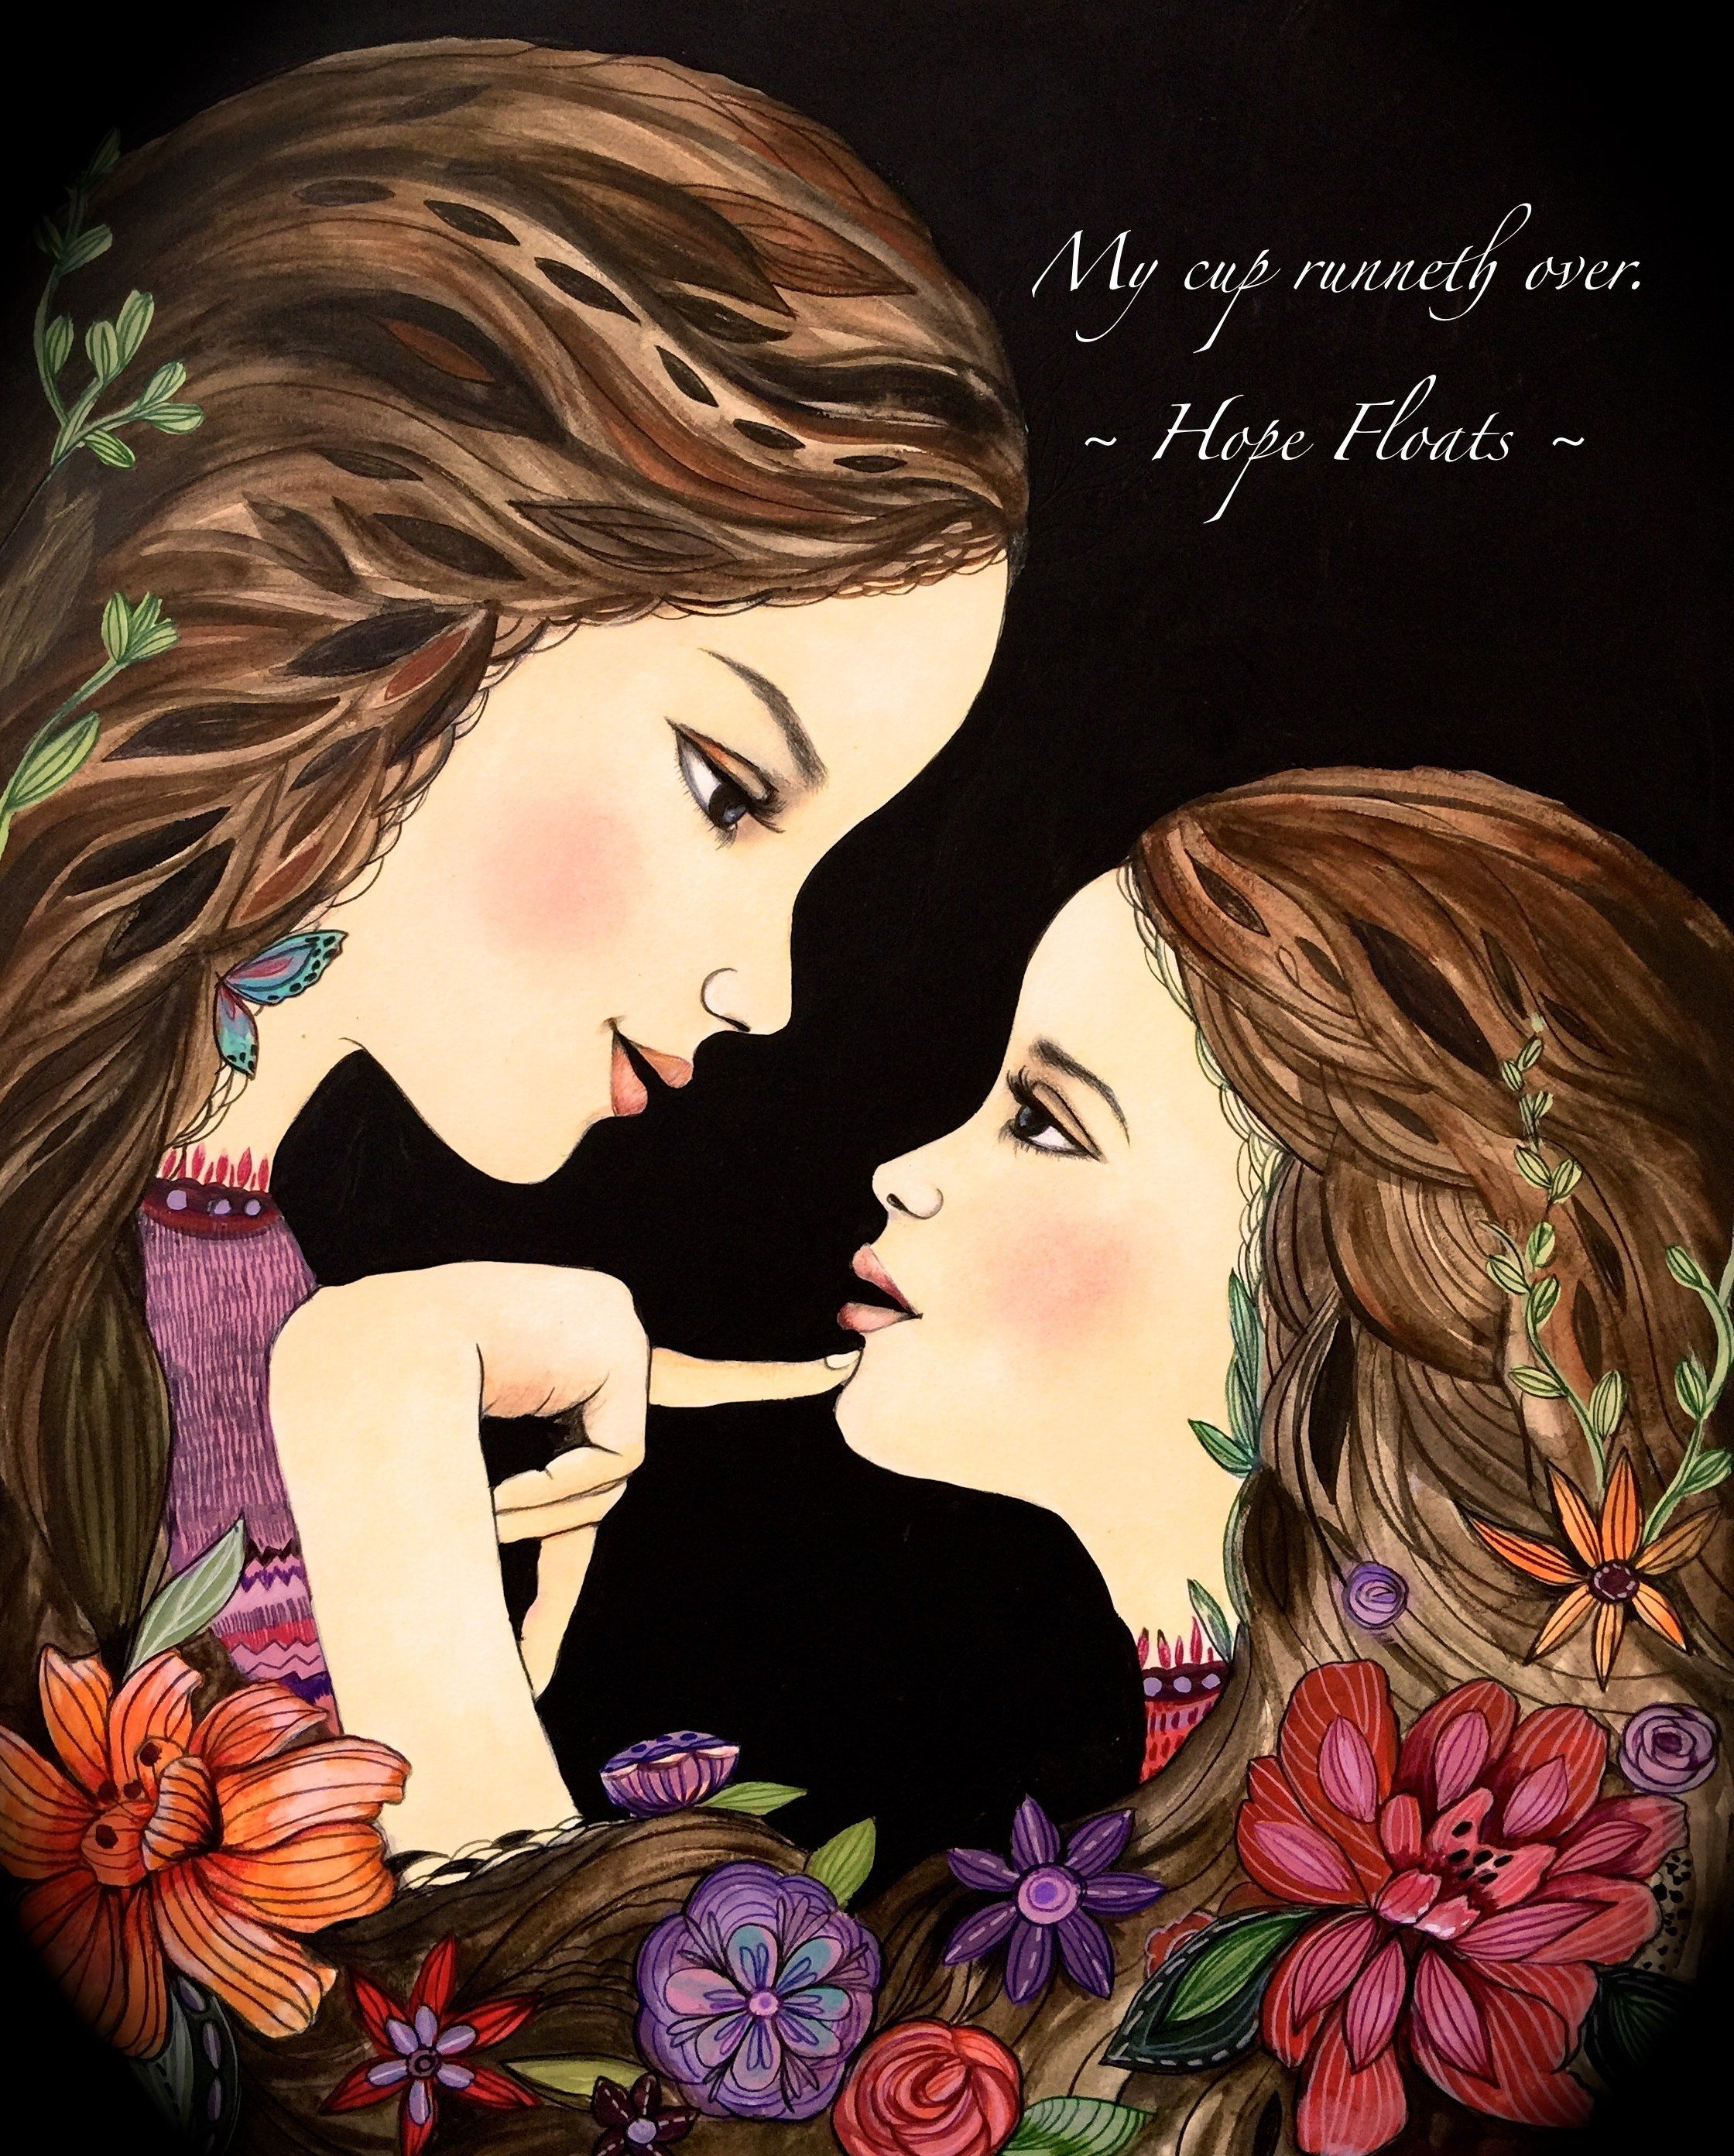 My cup runneth over. Hope Floats mother daughter art gift by claudiatremblay on Etsy